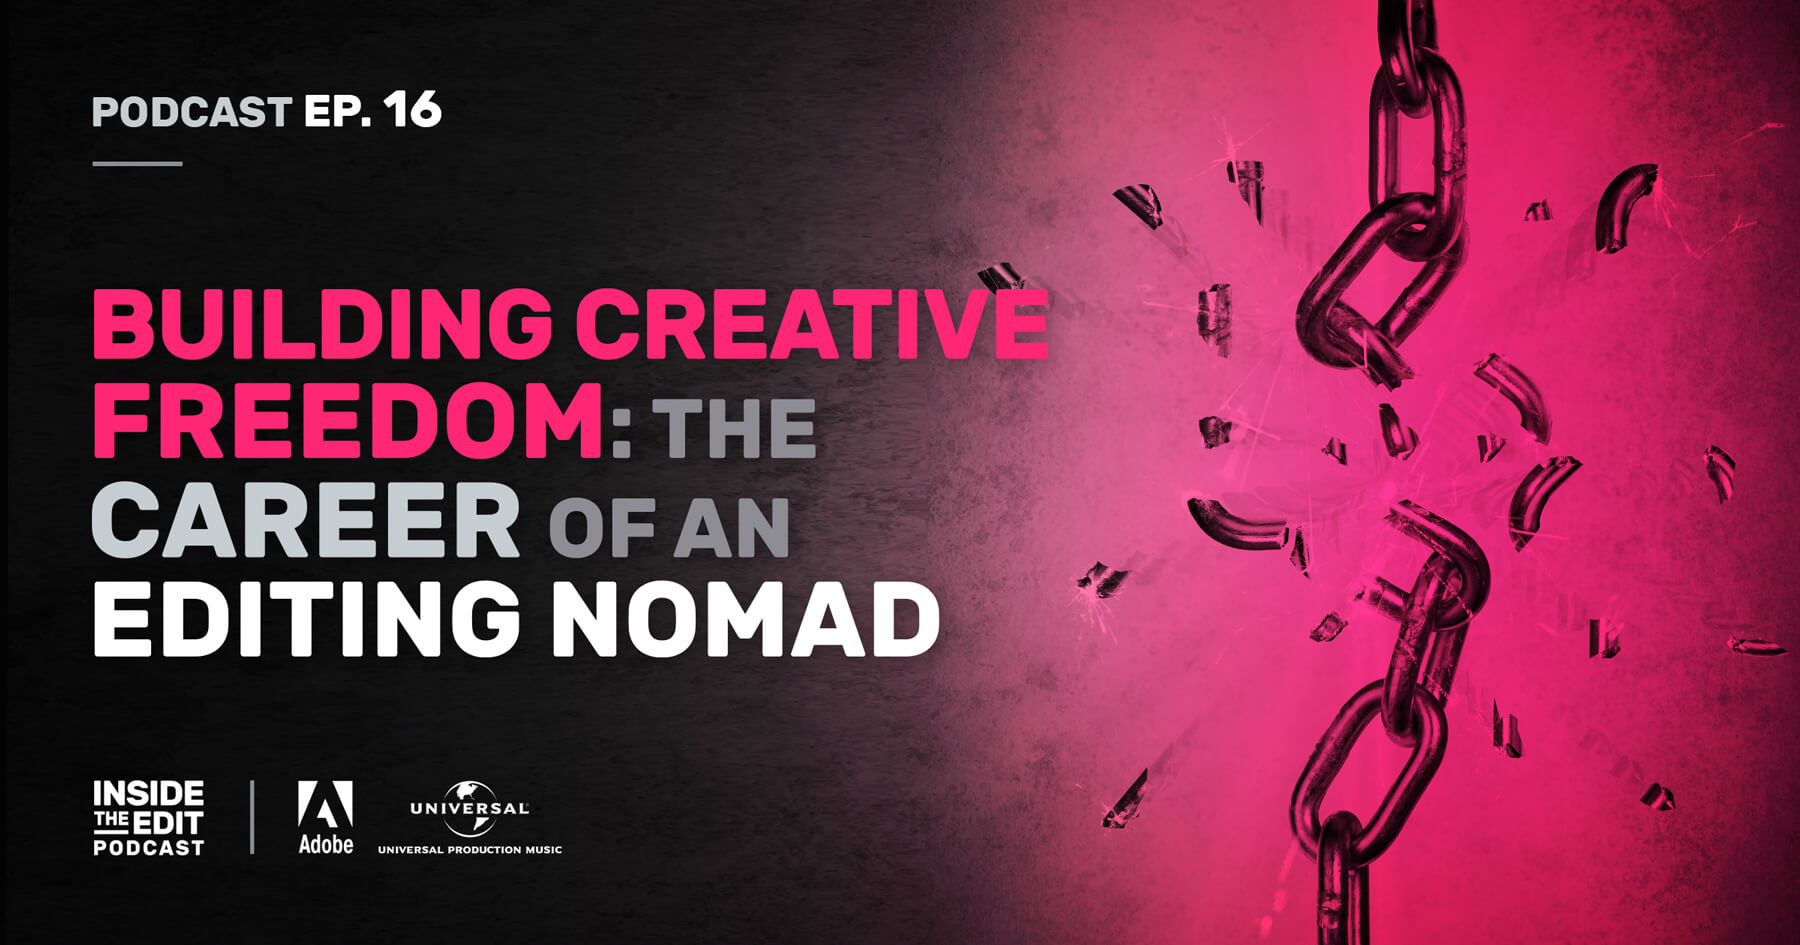 Building Creative Freedom: The Career of an Editing Nomad